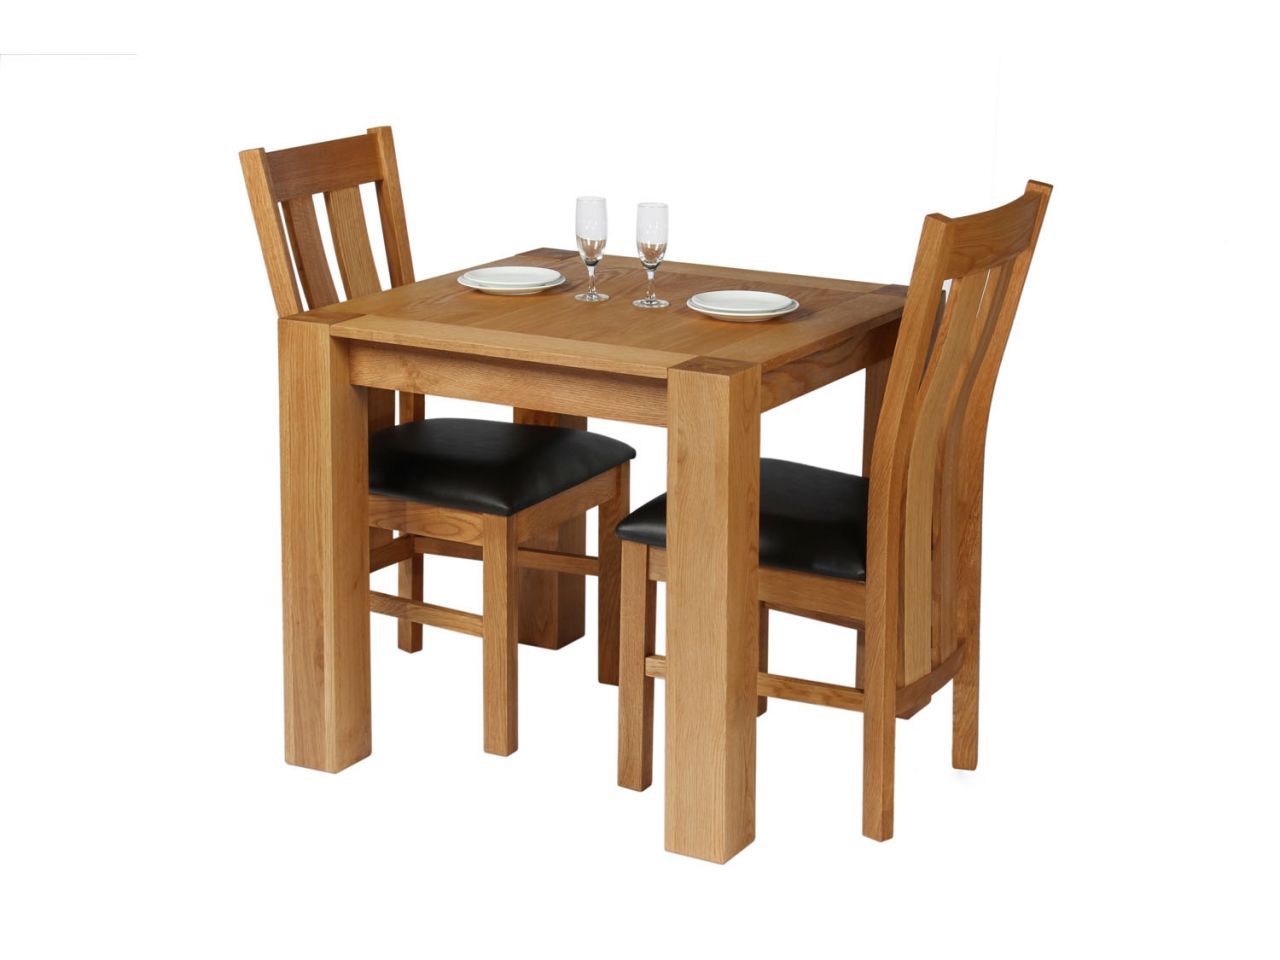 Small 2 Seater Table: Cambridge 2 Seater Oak Table Leather Chair Set